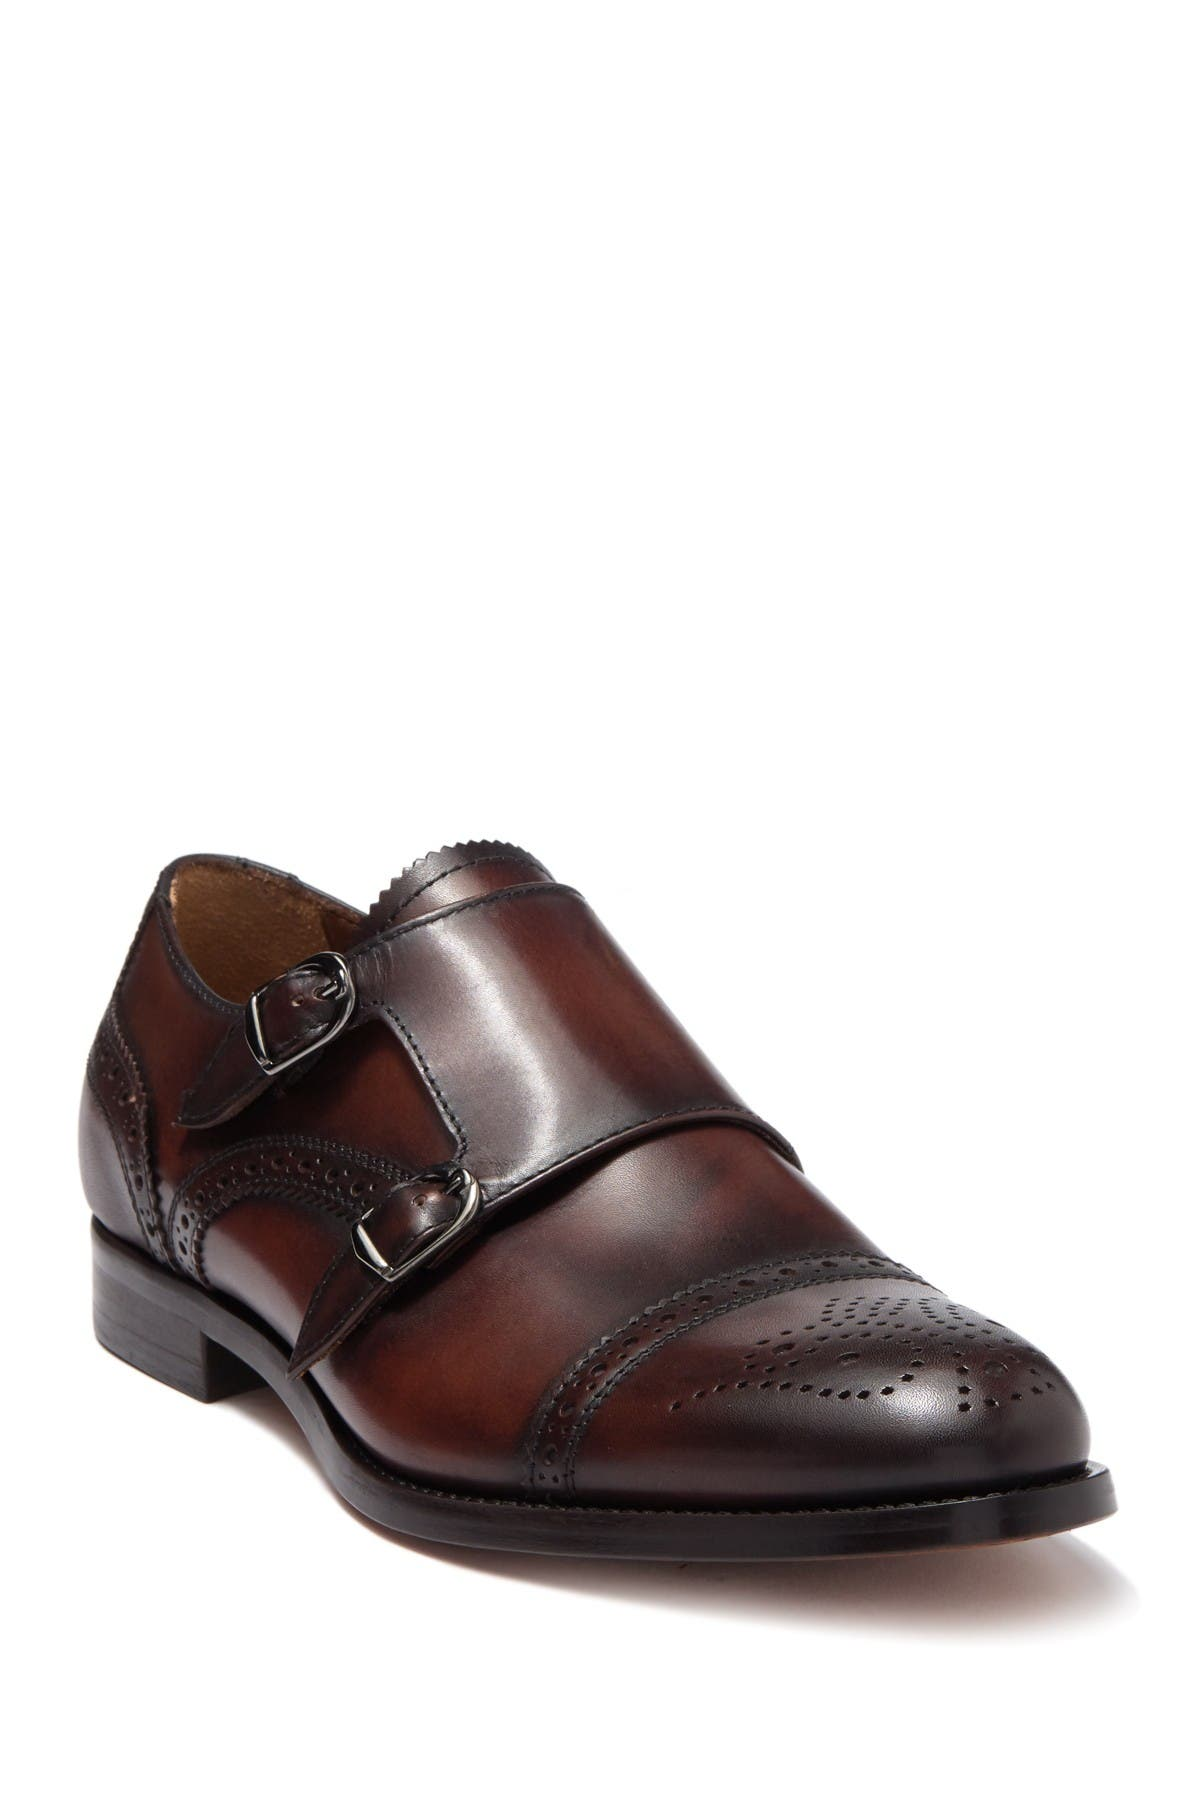 Image of Antonio Maurizi Leather Double Monk Strap Loafer